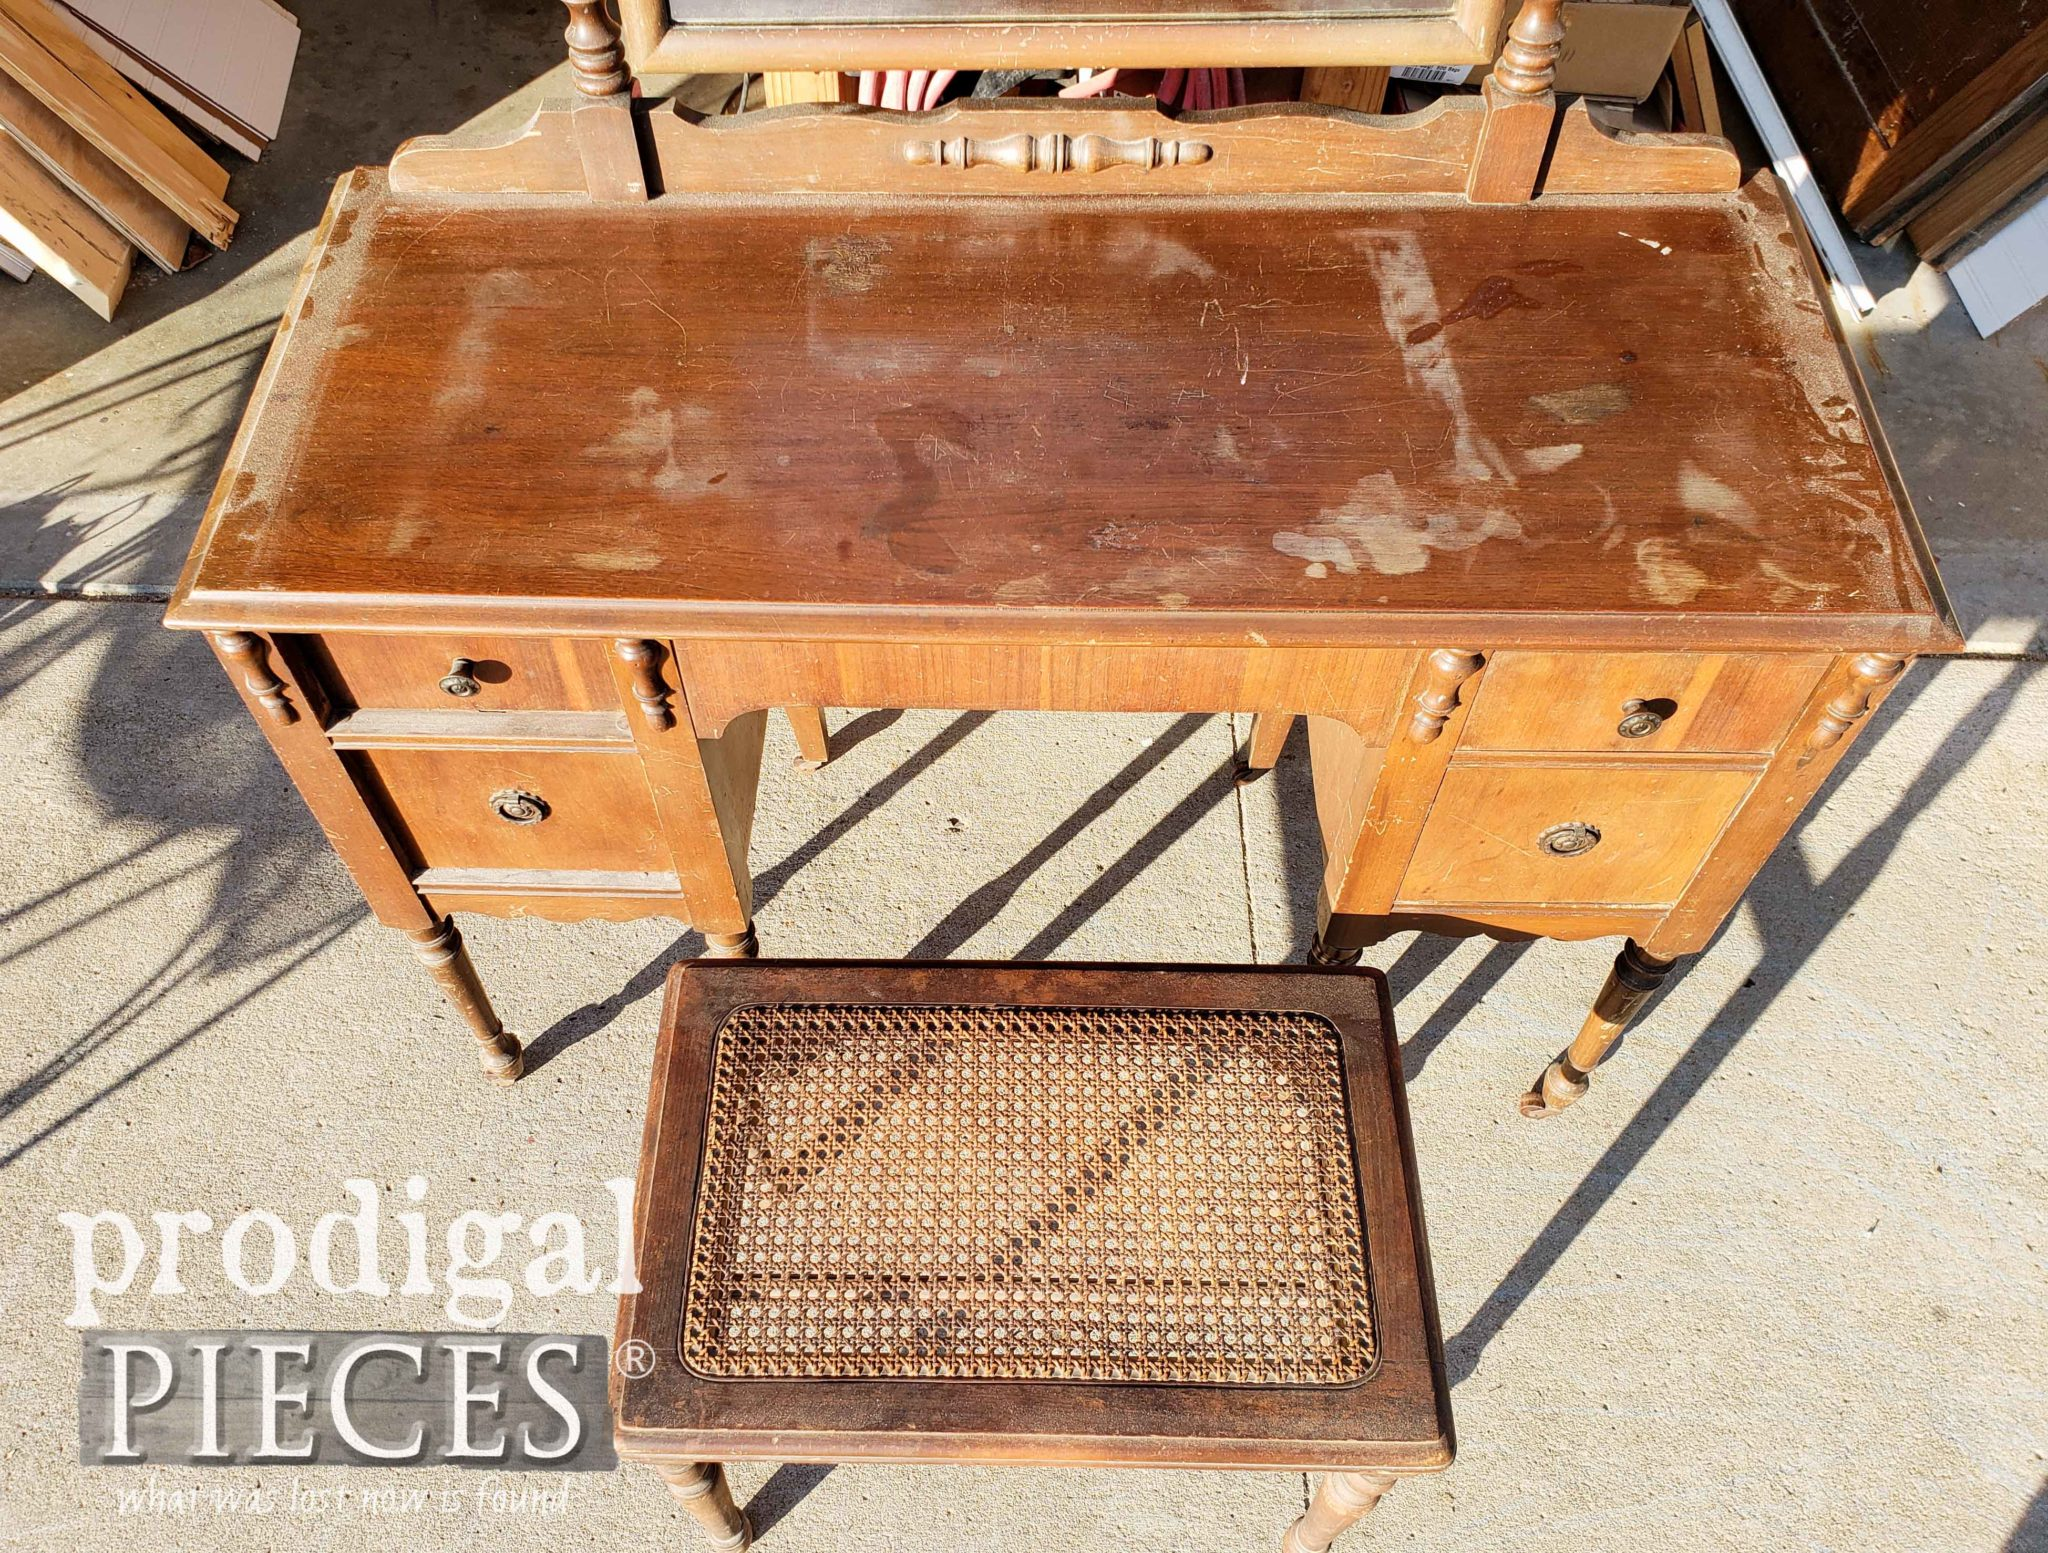 Top of Antique Dressing Table Set with Damage | prodigalpieces.com